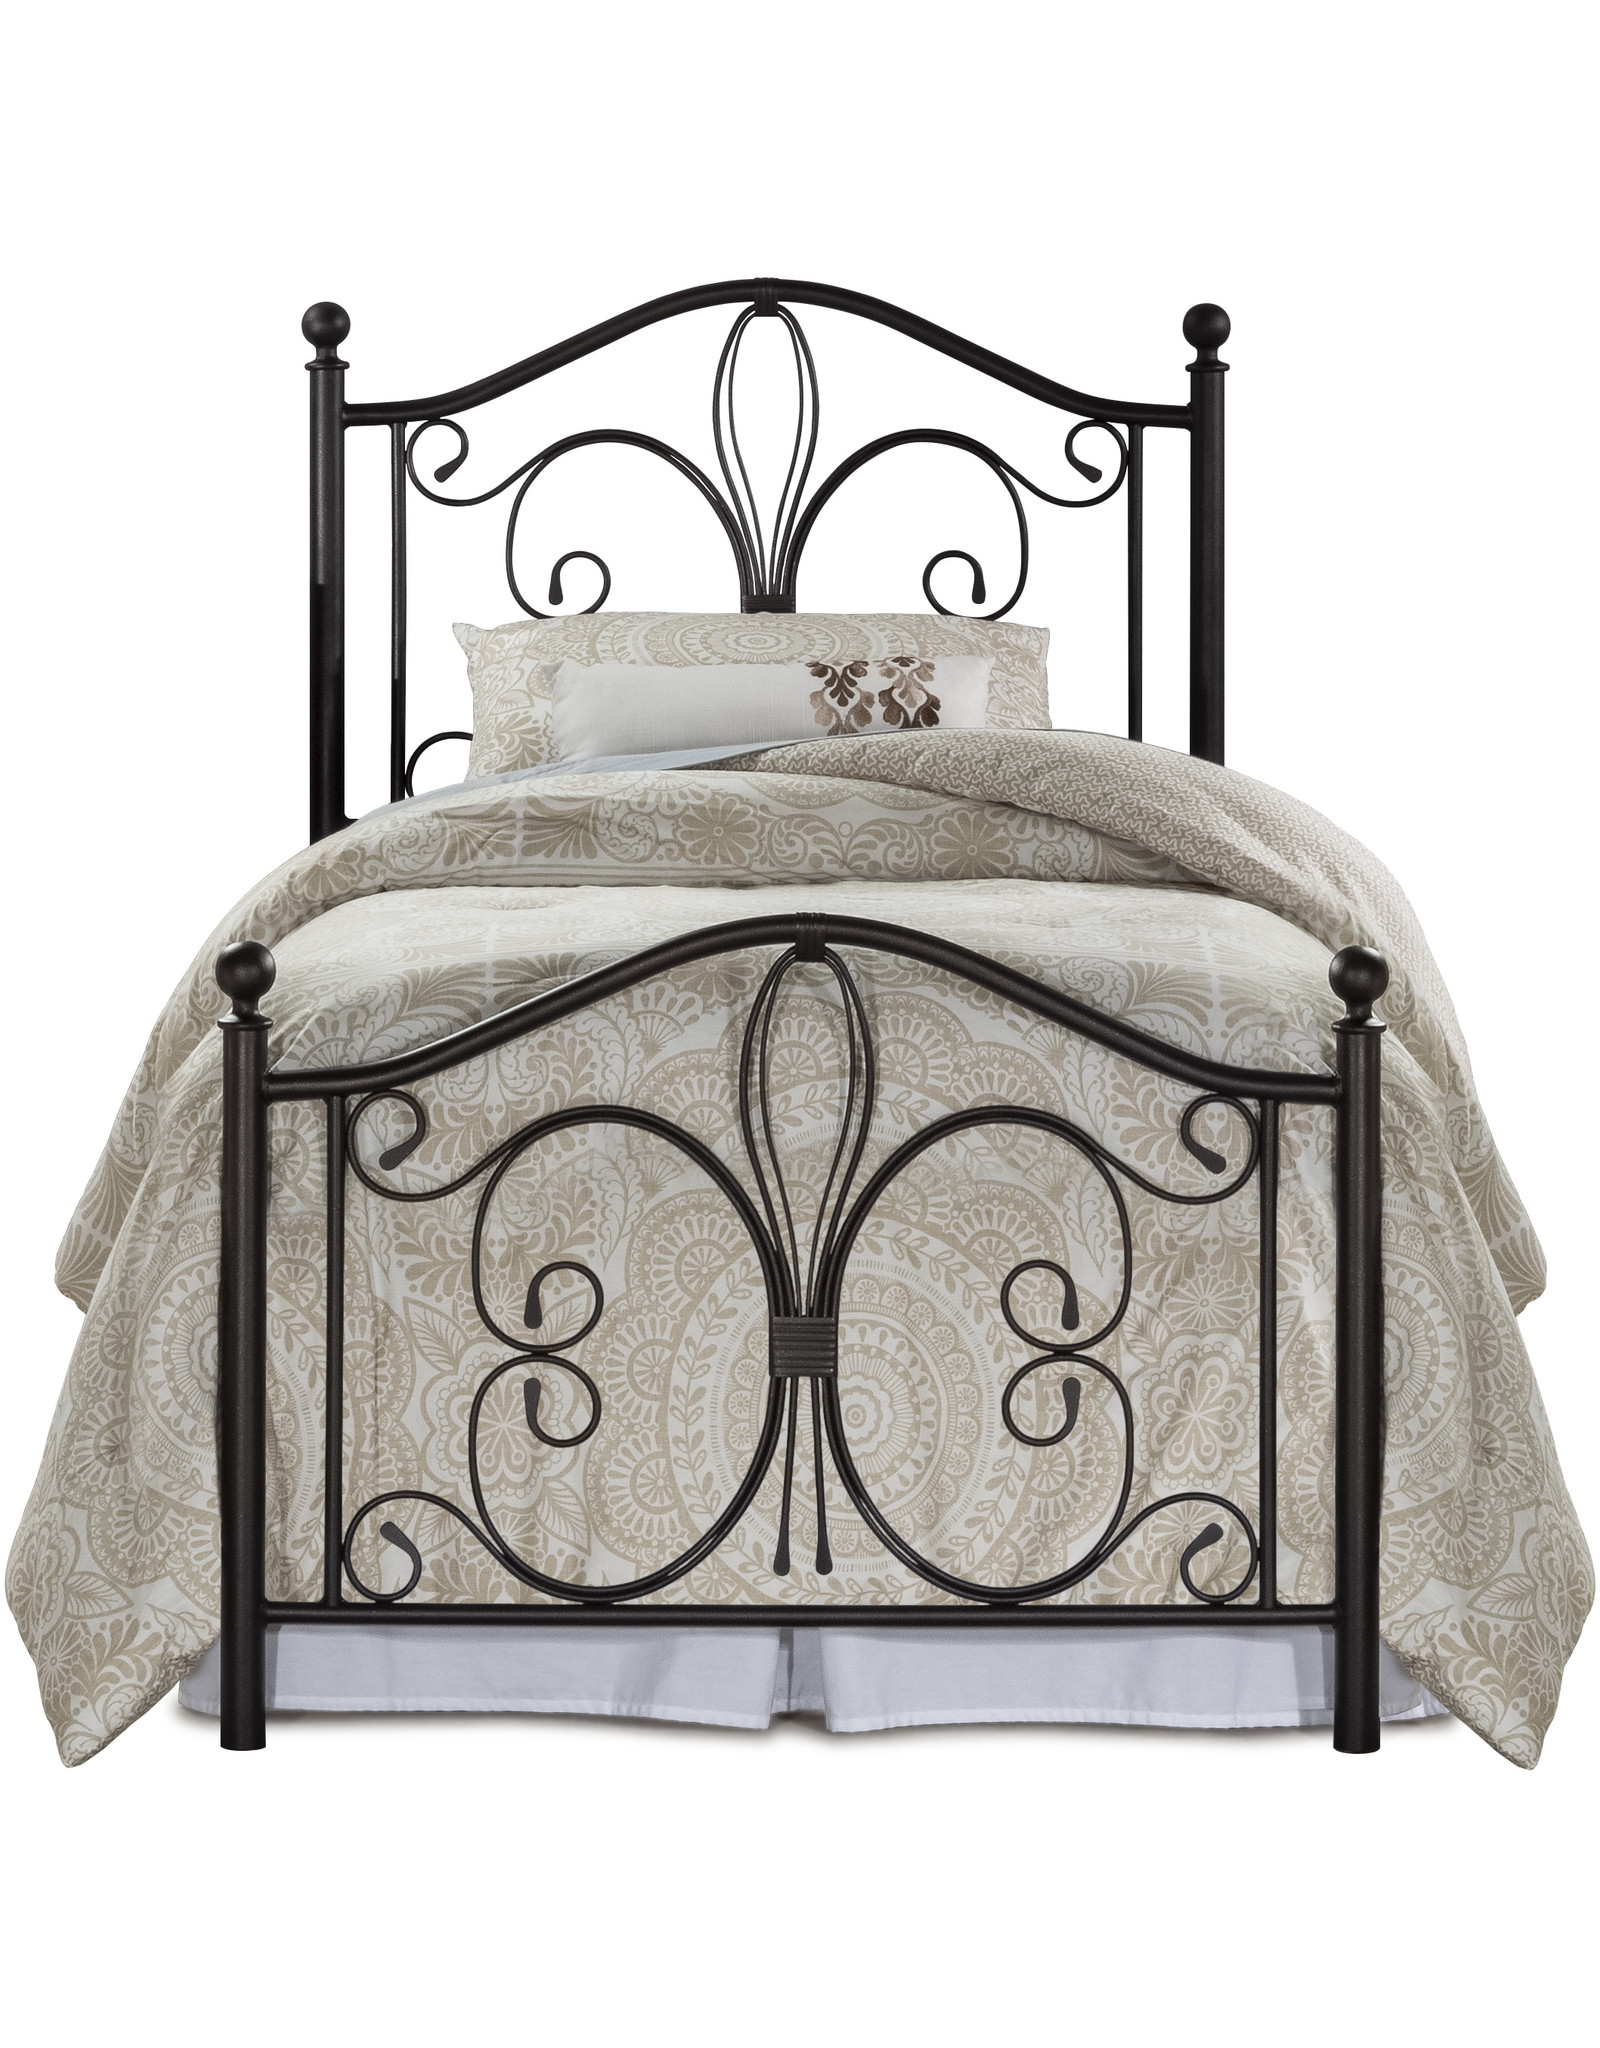 Milwaukee Metal Bed (Includes headboard, footboard, and rails)